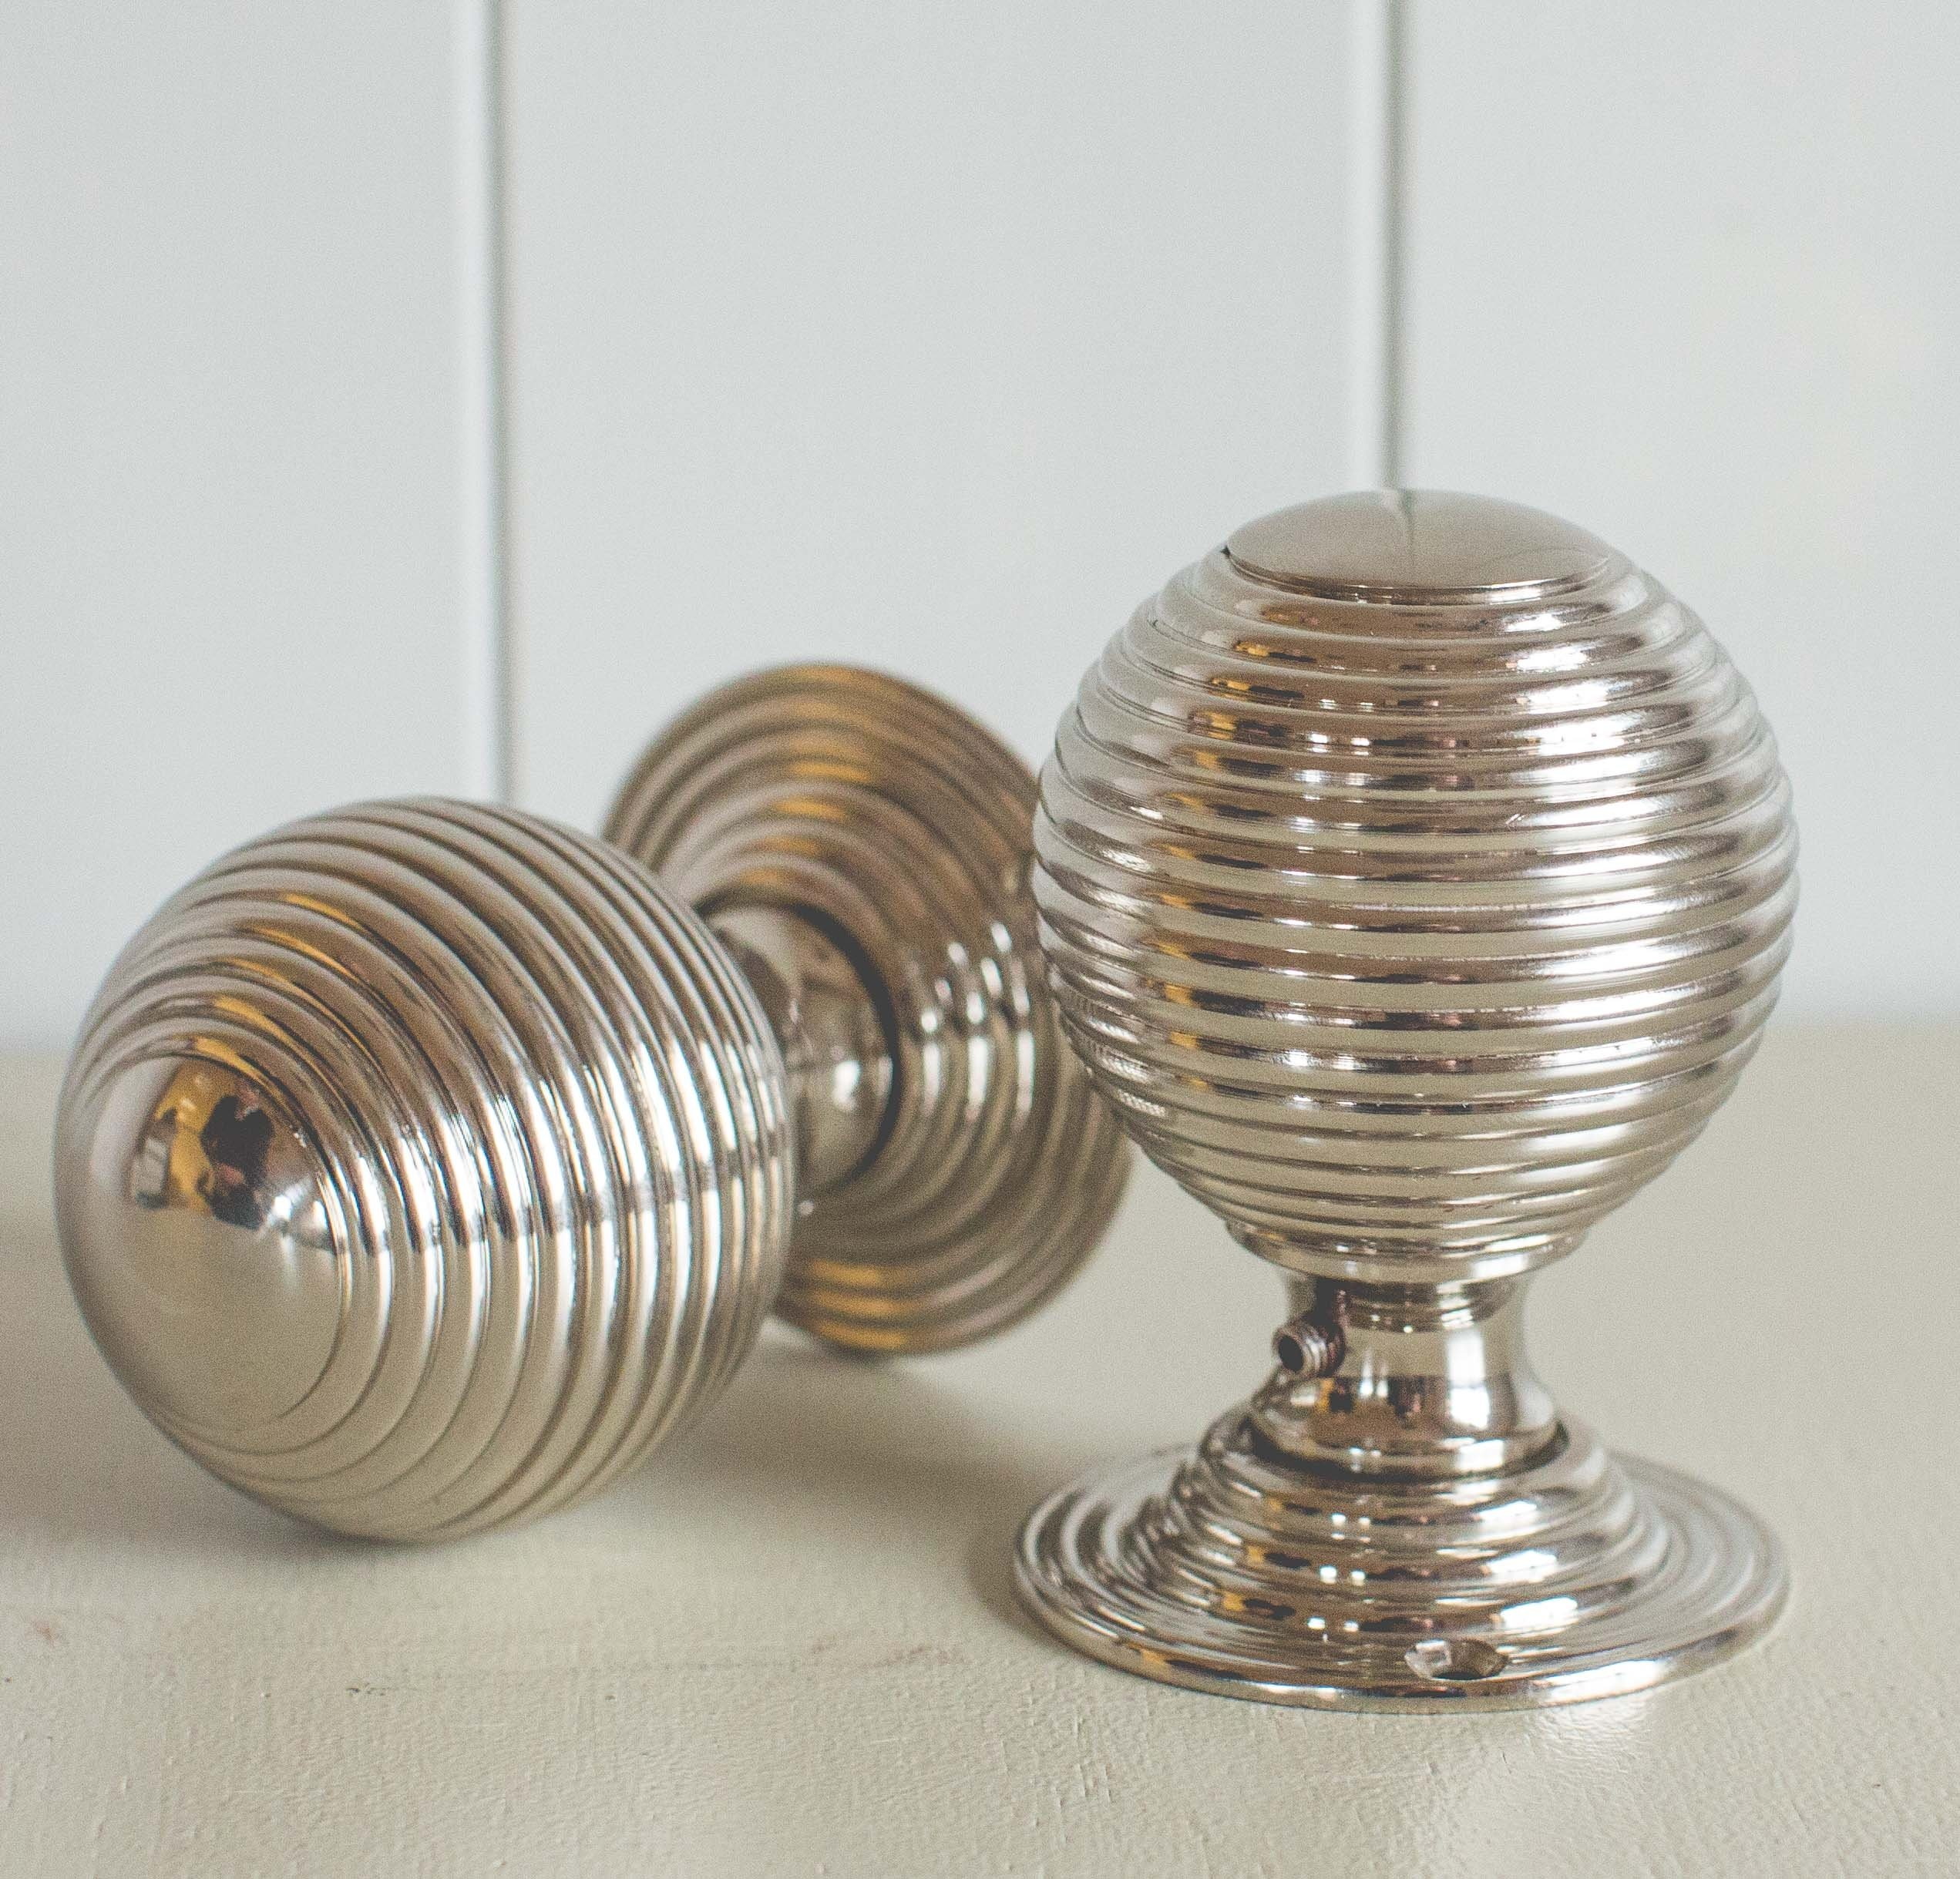 Beehive Large Door Knobs (Pair) - Nickel